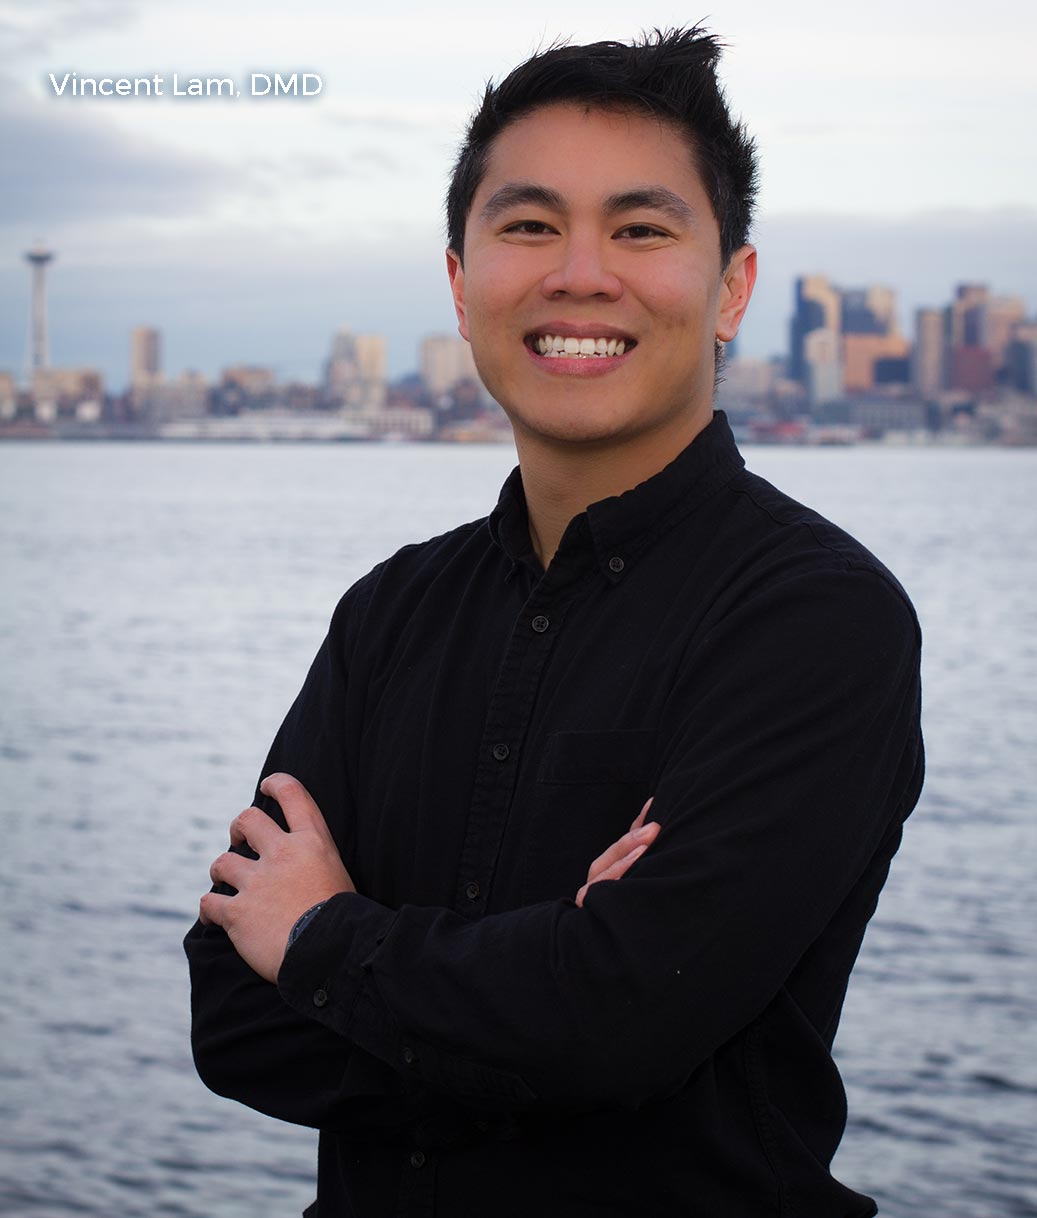 Dr. Vincent Lam is a dentist serving Seahurst and Burien, Washington.